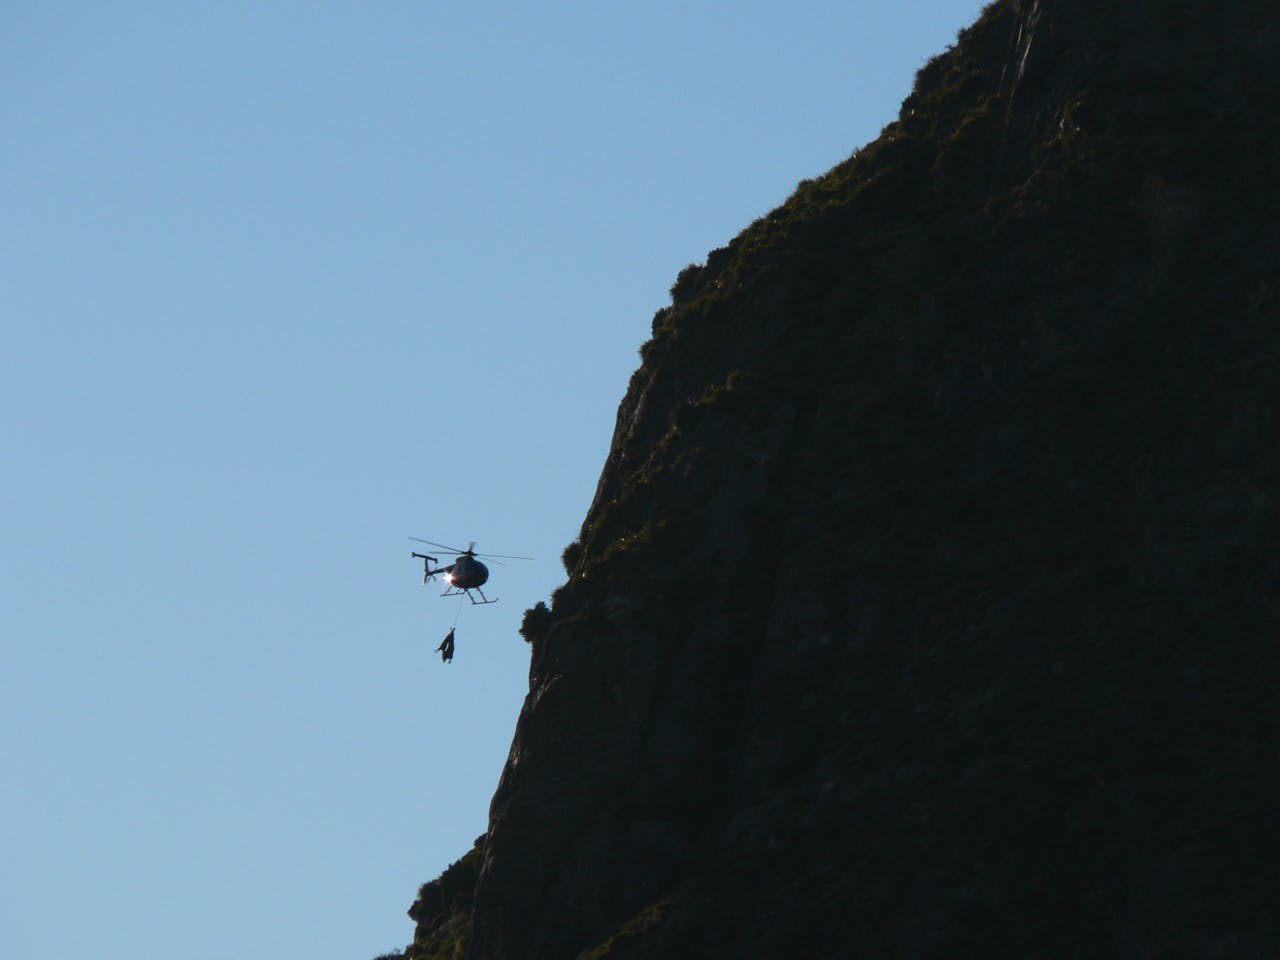 The NZDa says heli-hunting will have detrimental effects on the recreation opportunities of trampers and hunters